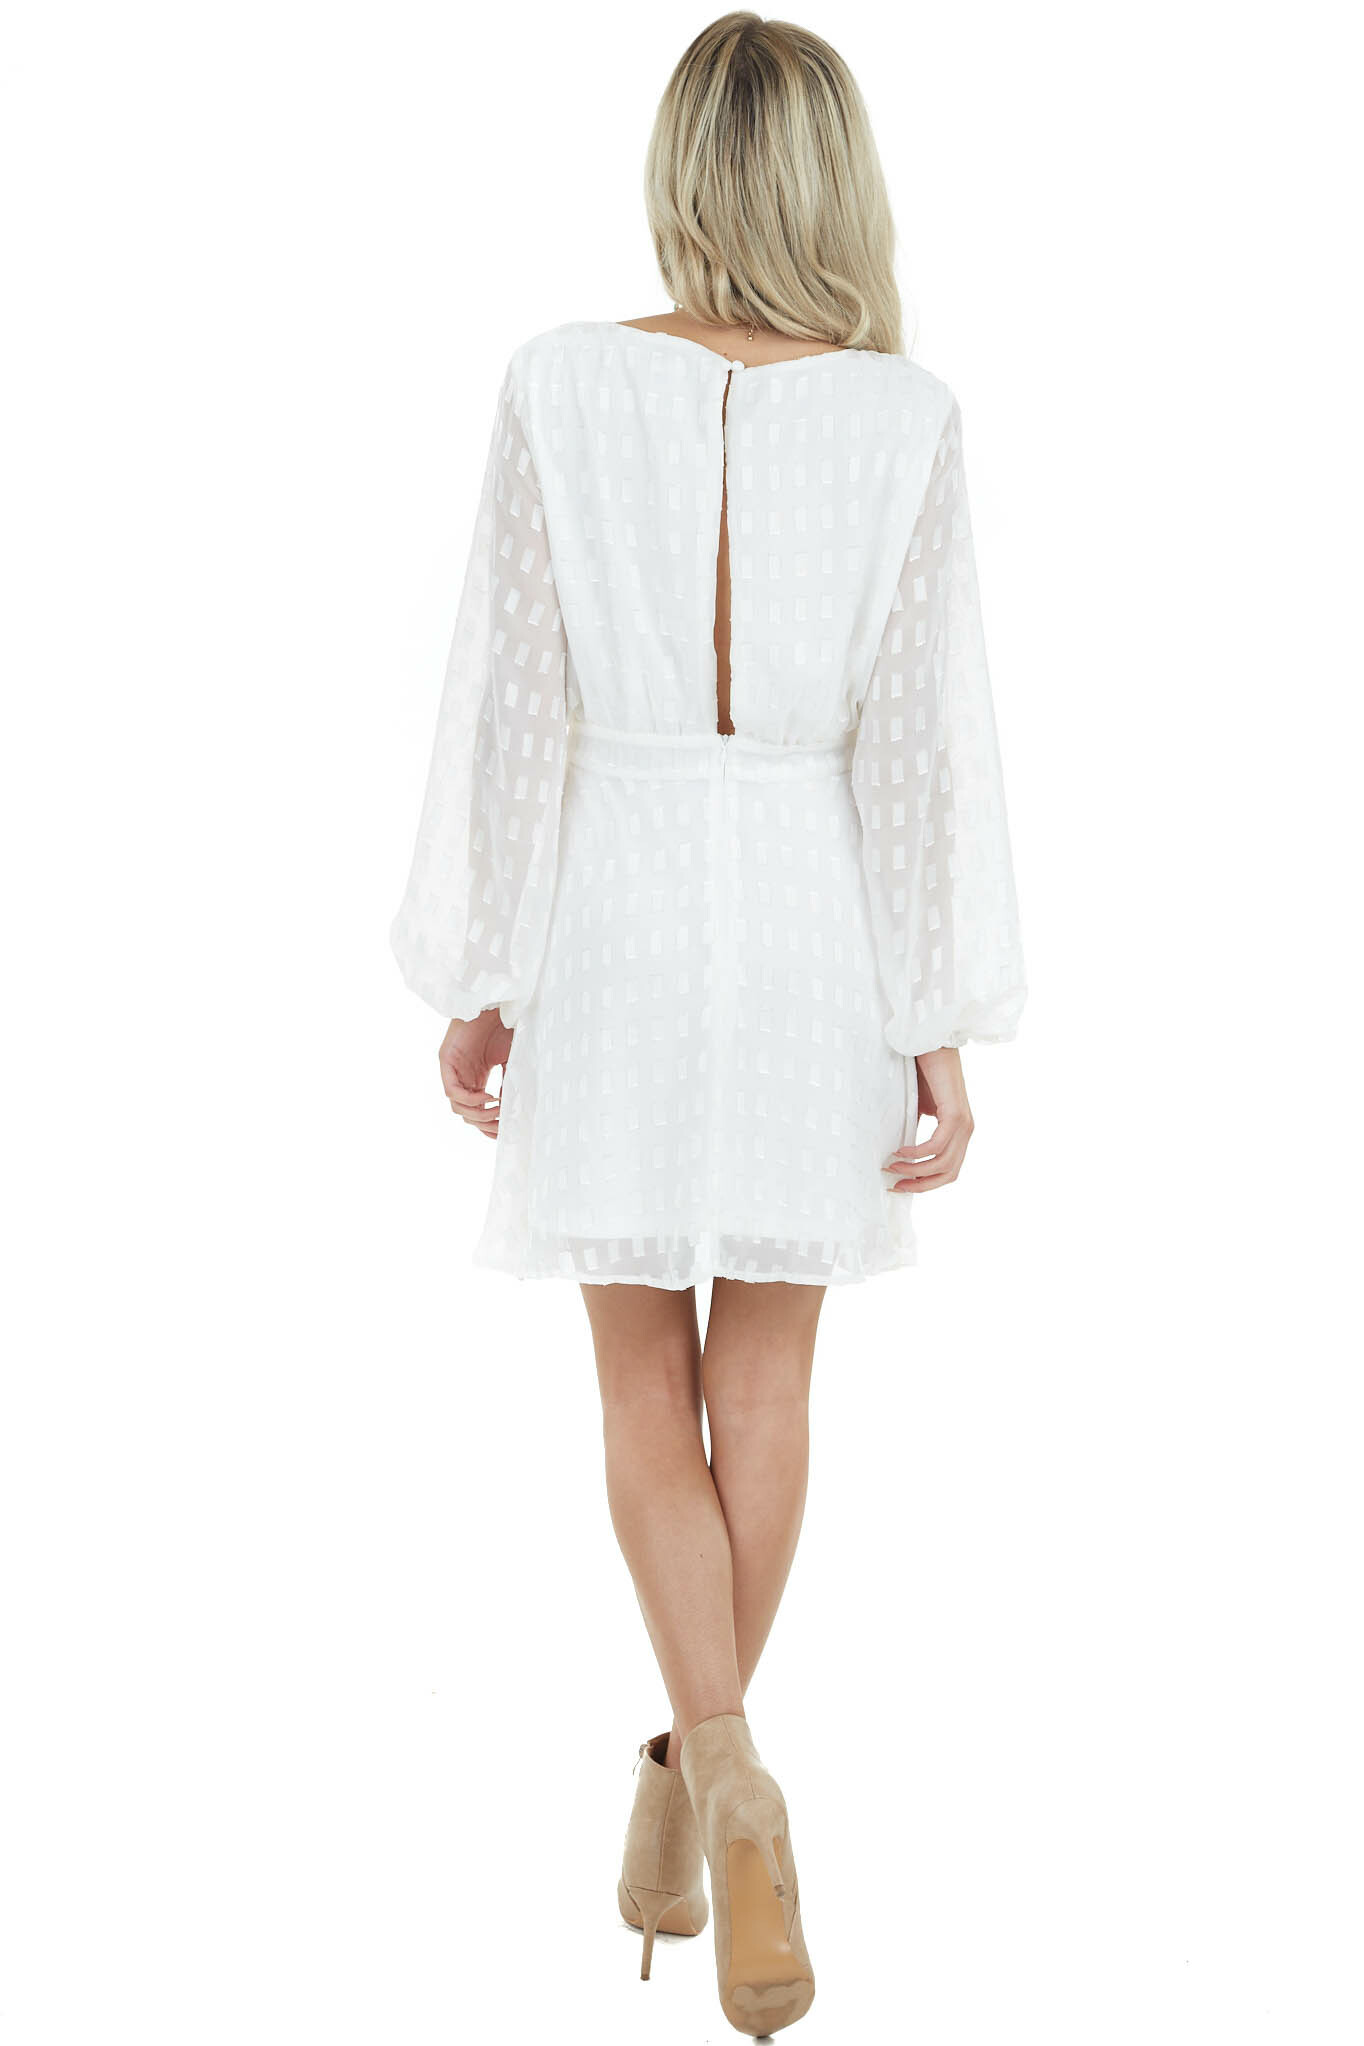 Pearl White Bubble Waist Dress with Gold Thread Details